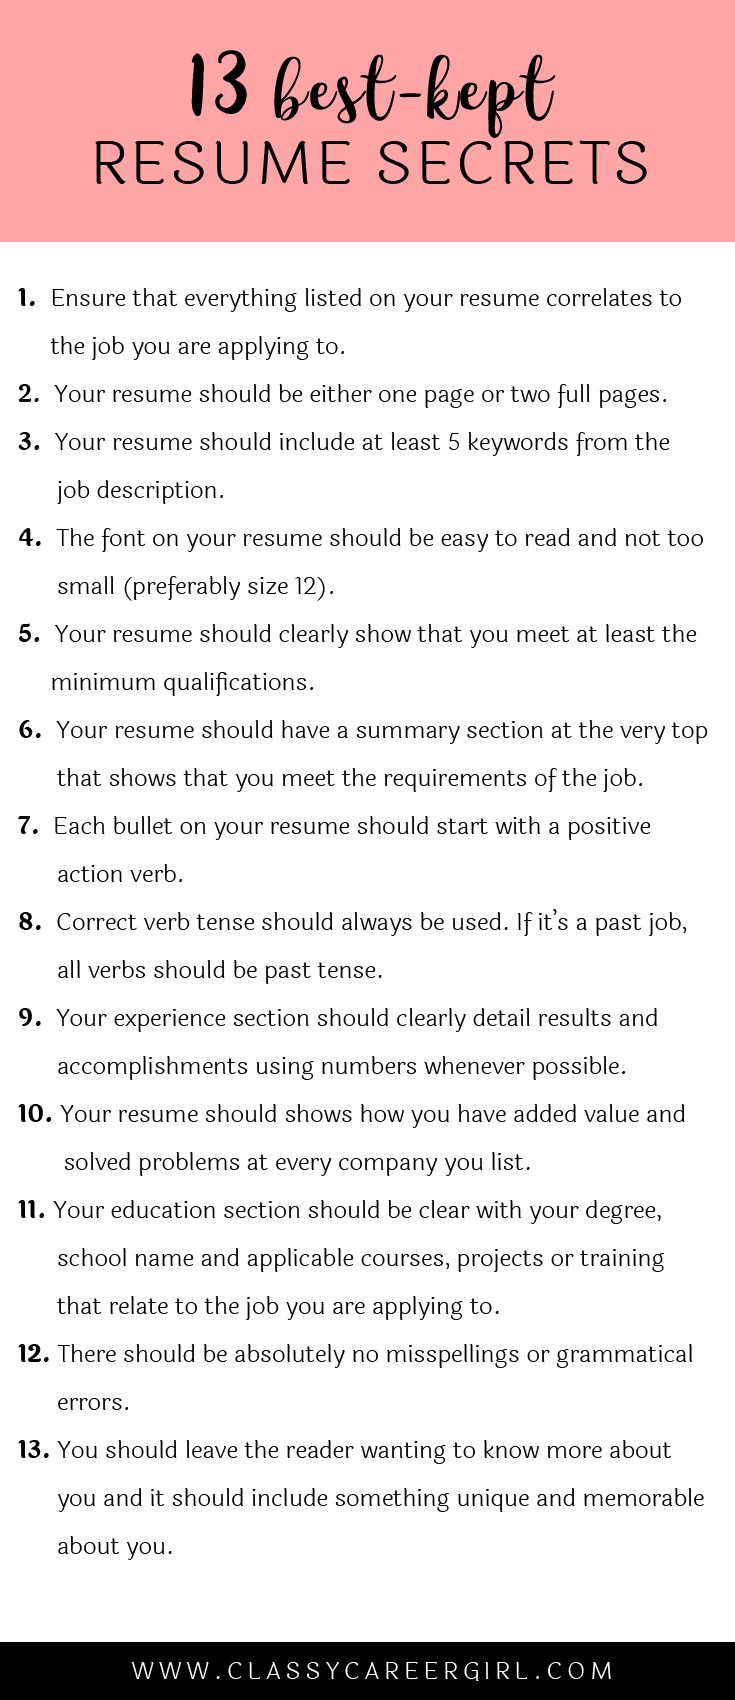 resume Best Things To Say On A Resume 25 best resume writing ideas on pinterest tips the 13 kept secrets